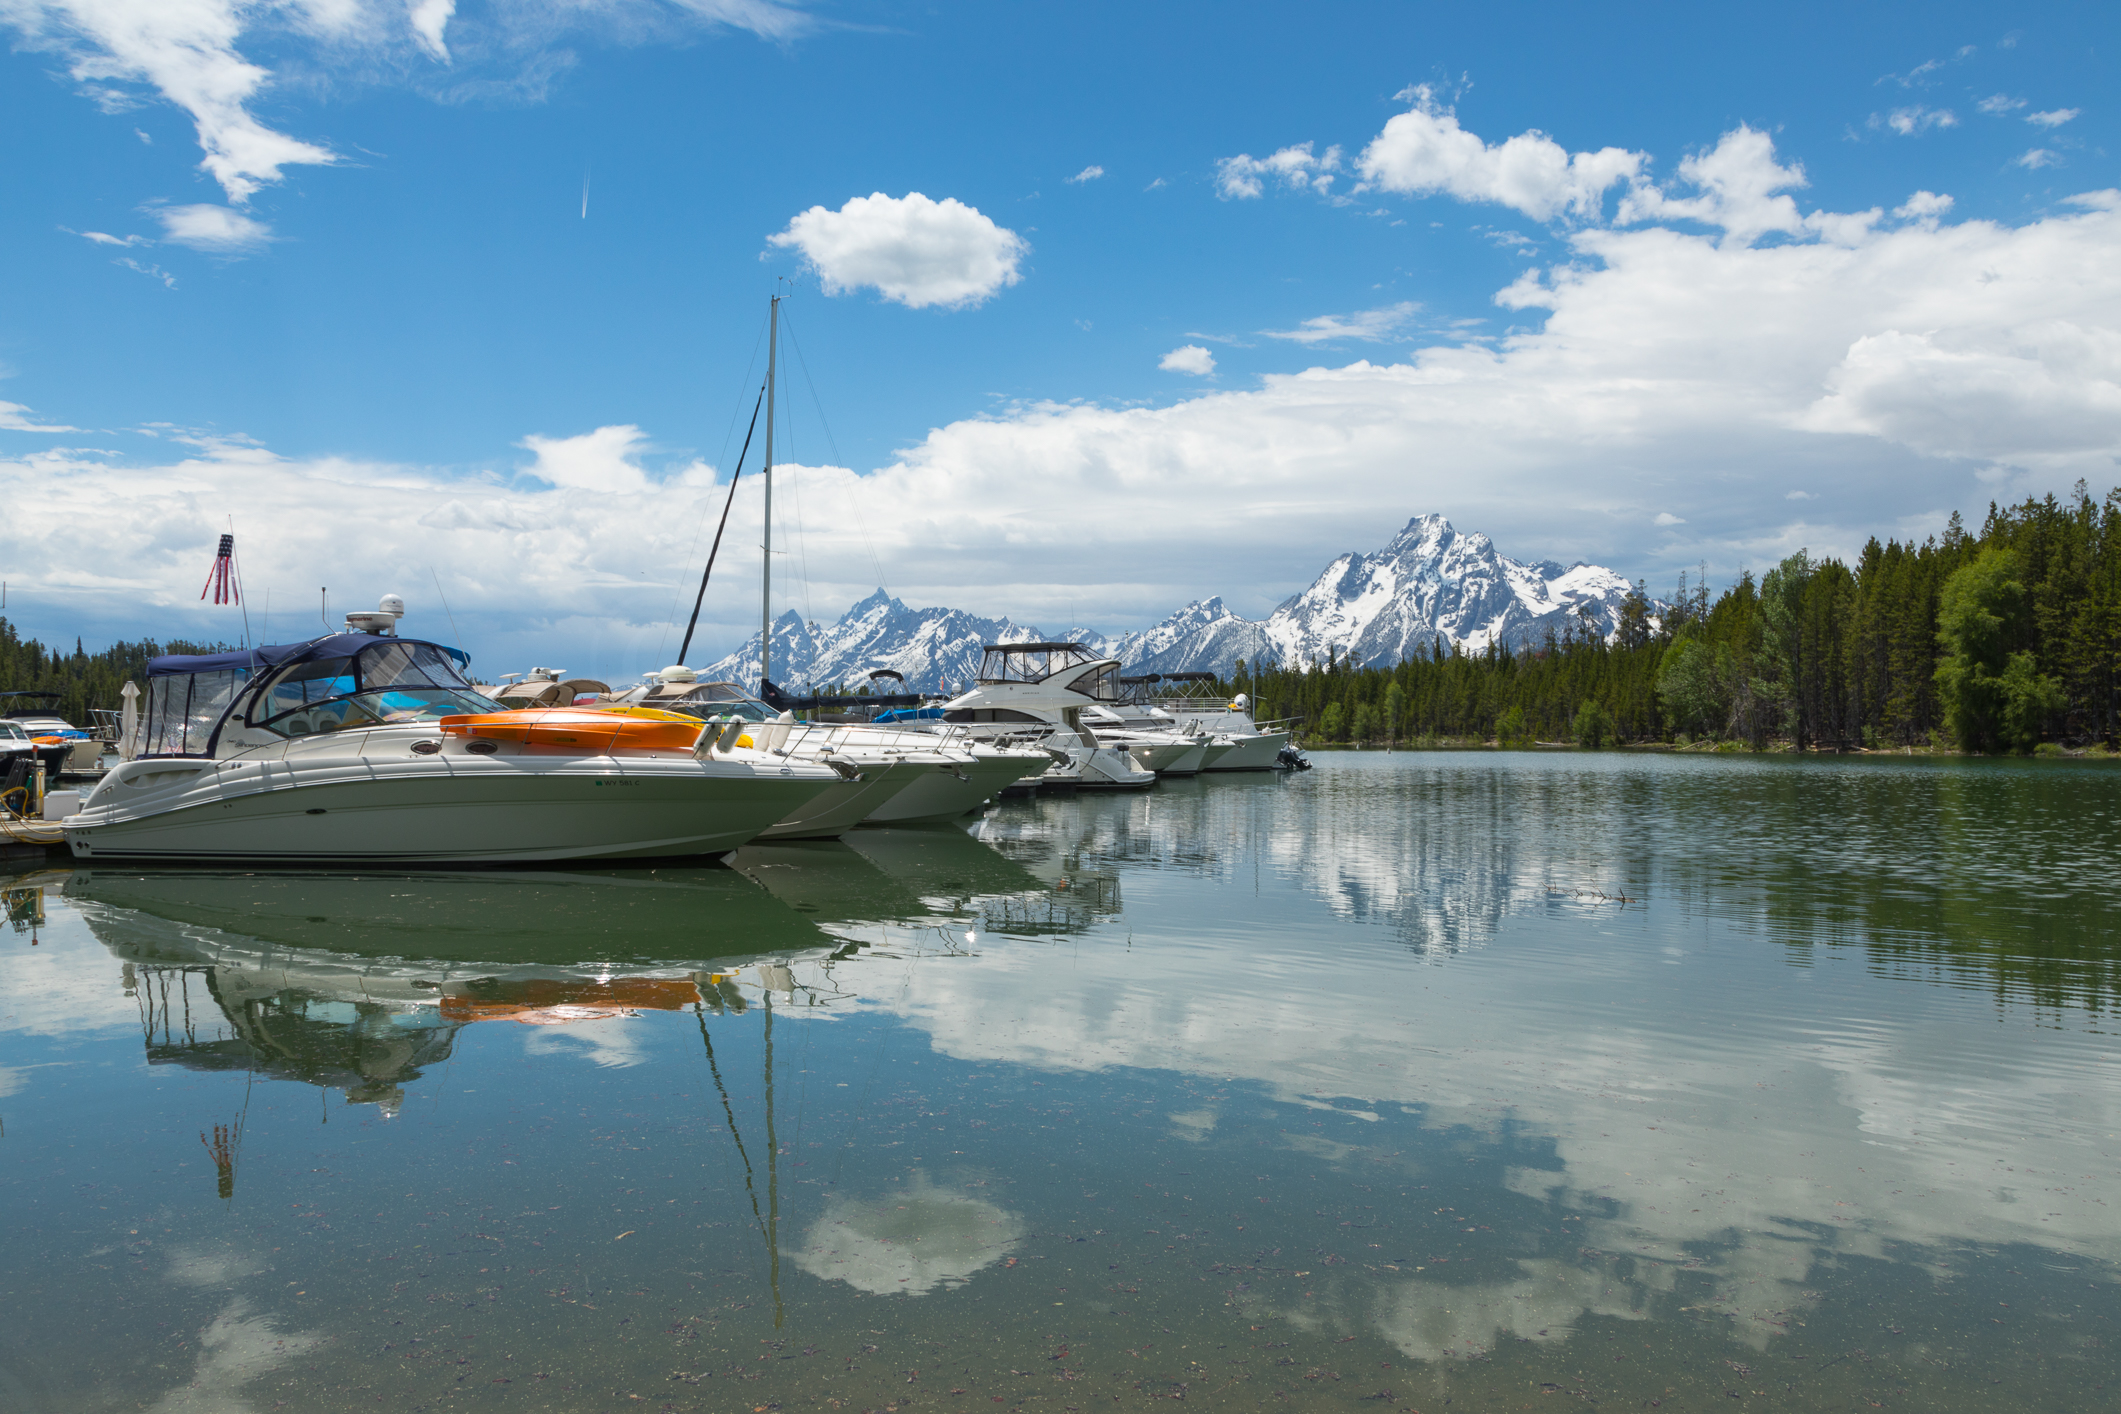 Colter Bay, Image # 2952